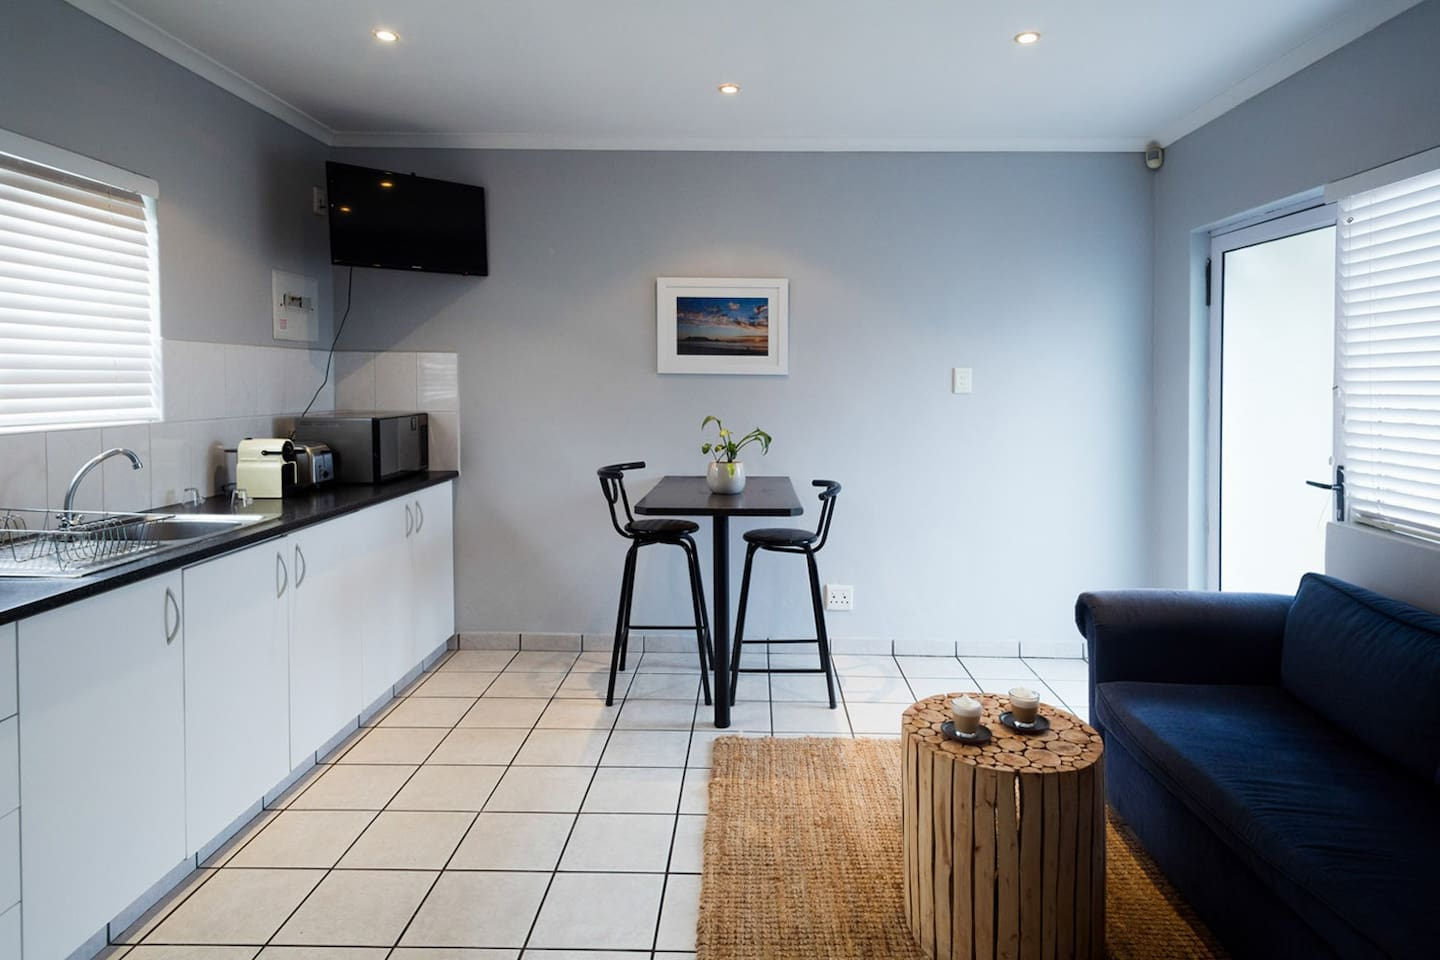 Private one-bedroom self-catering apartment based in Blouberg